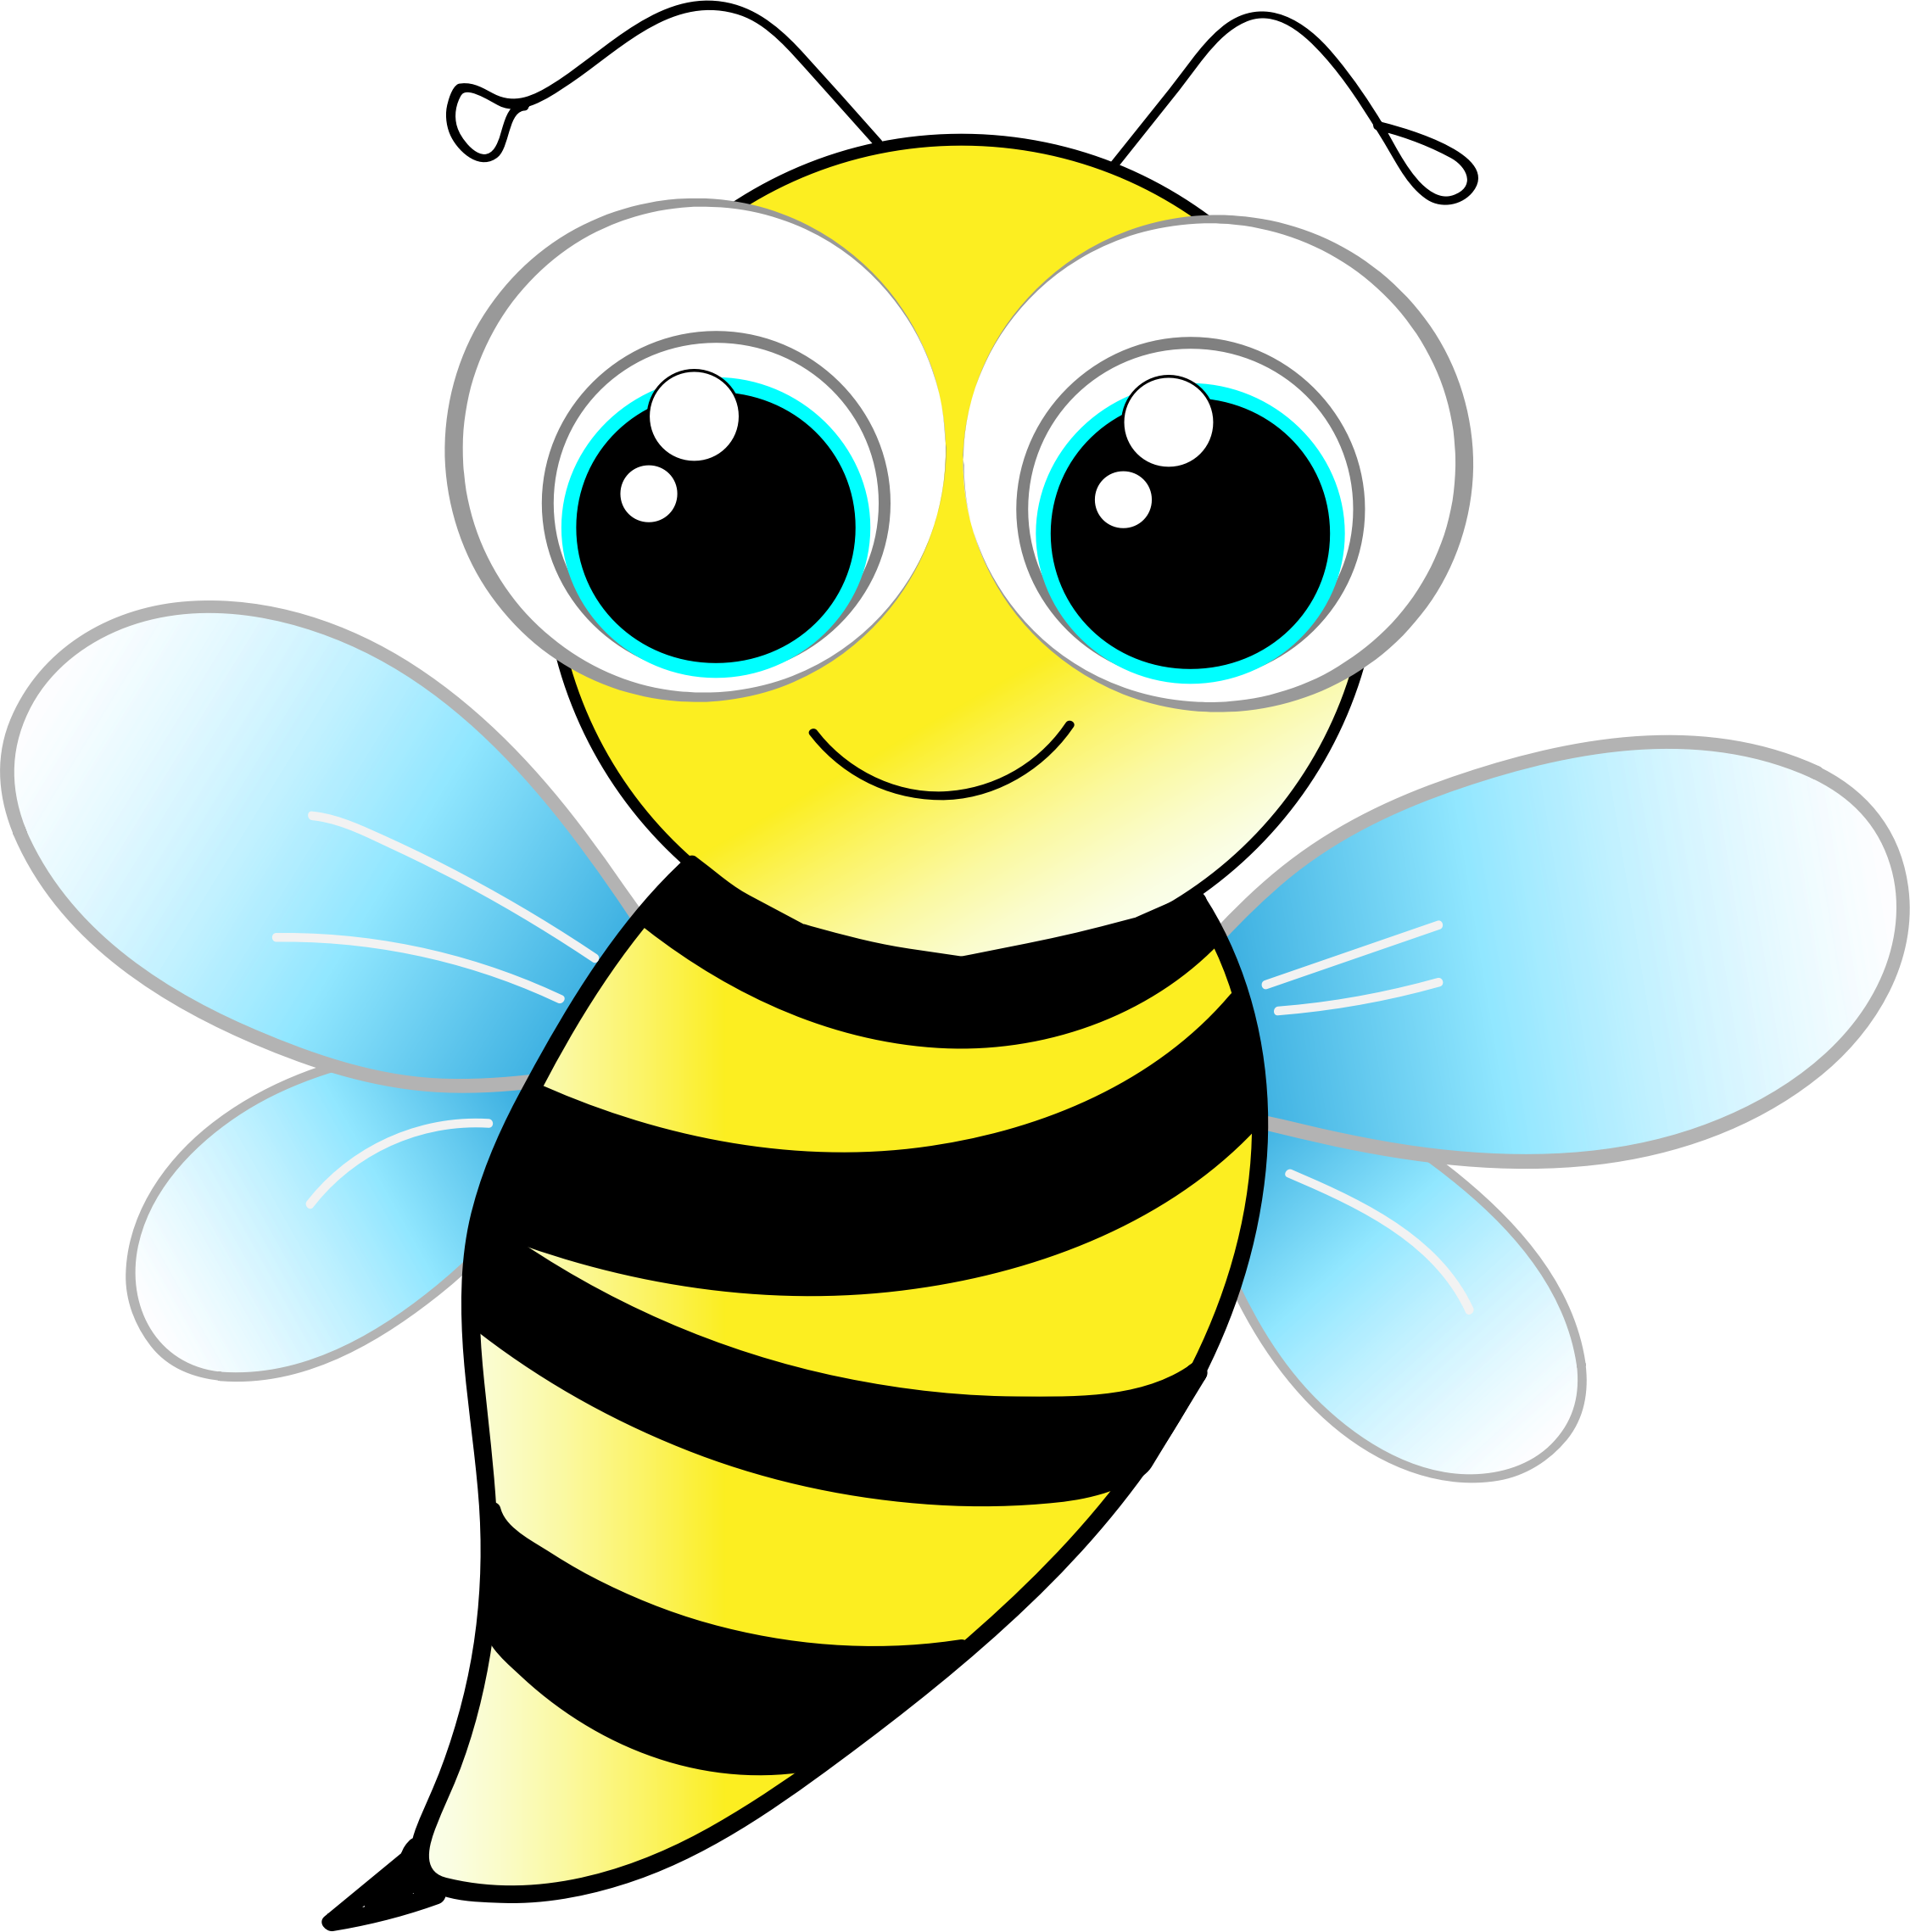 Halloween bumblee clipart banner royalty free library Bee by @a.tauzzi, A big-eyed bee., on @openclipart | bulletin boards ... banner royalty free library